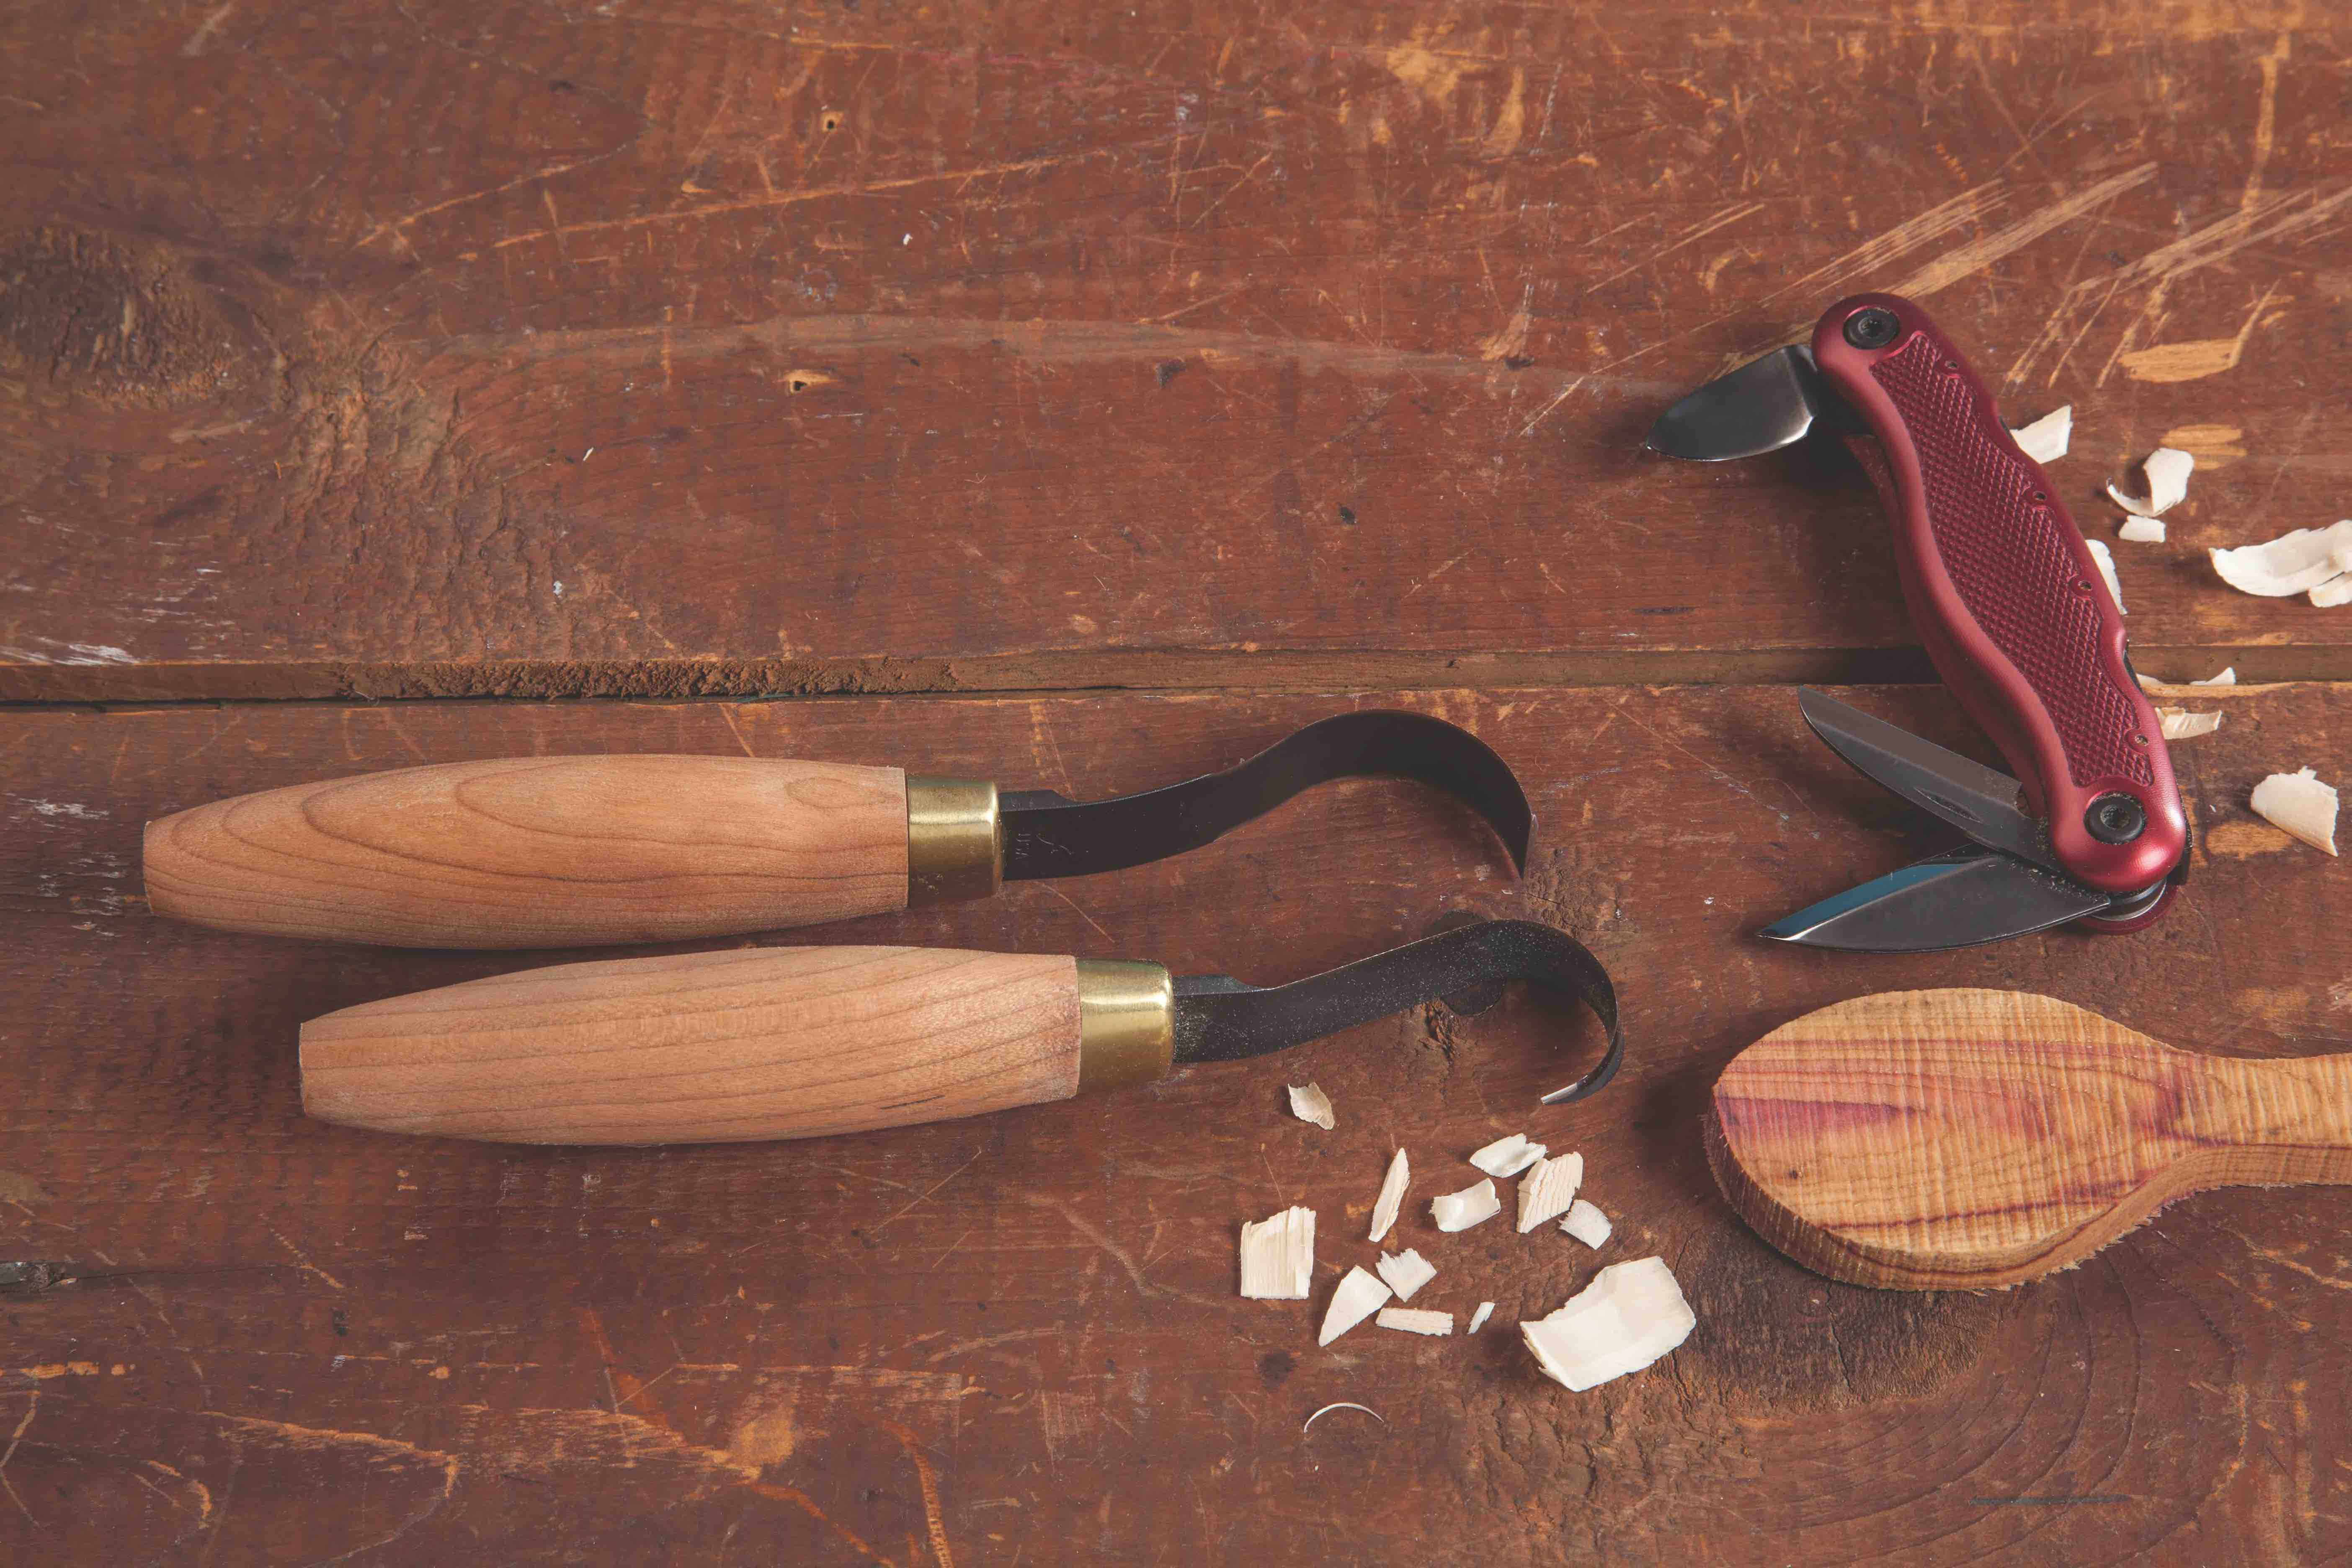 wood carving tools HANDMADE spoon carving tools Lithuania Gilles